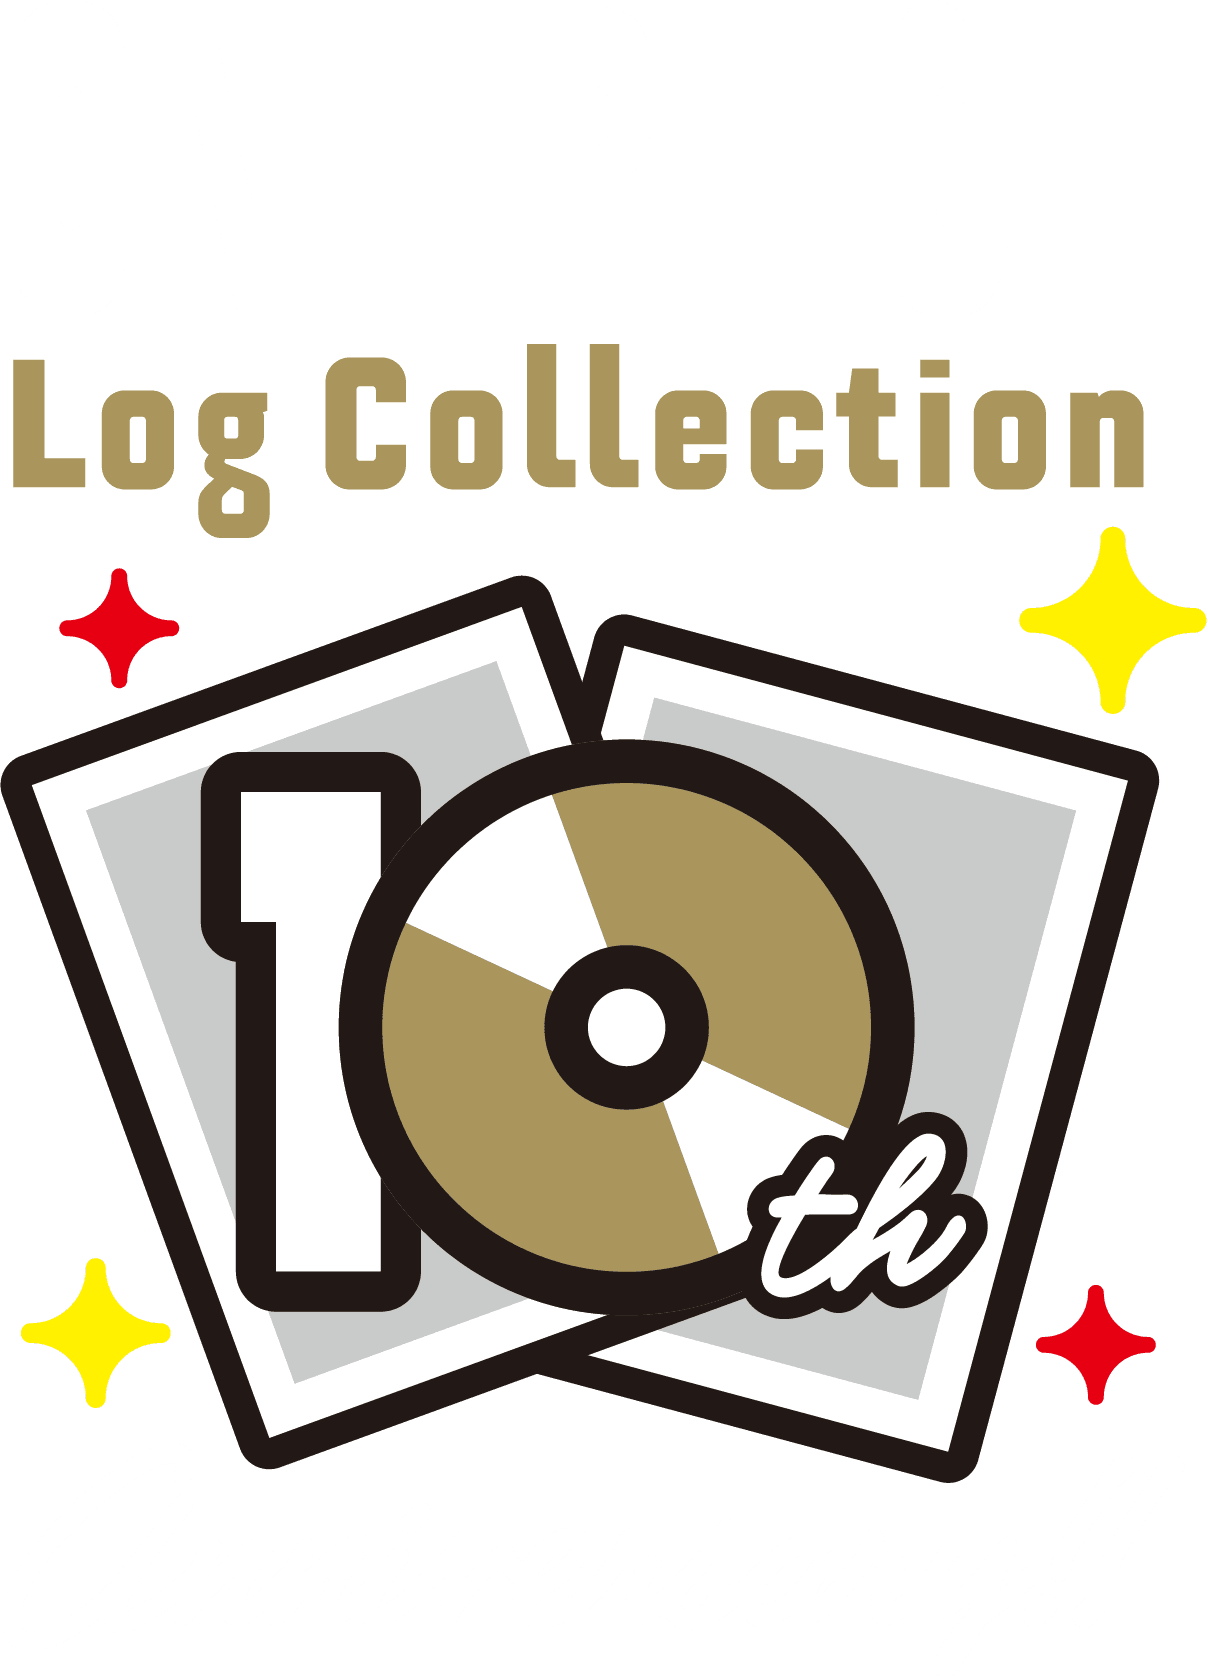 ONE PIECE Log Collection 10th ANNIVERSARY